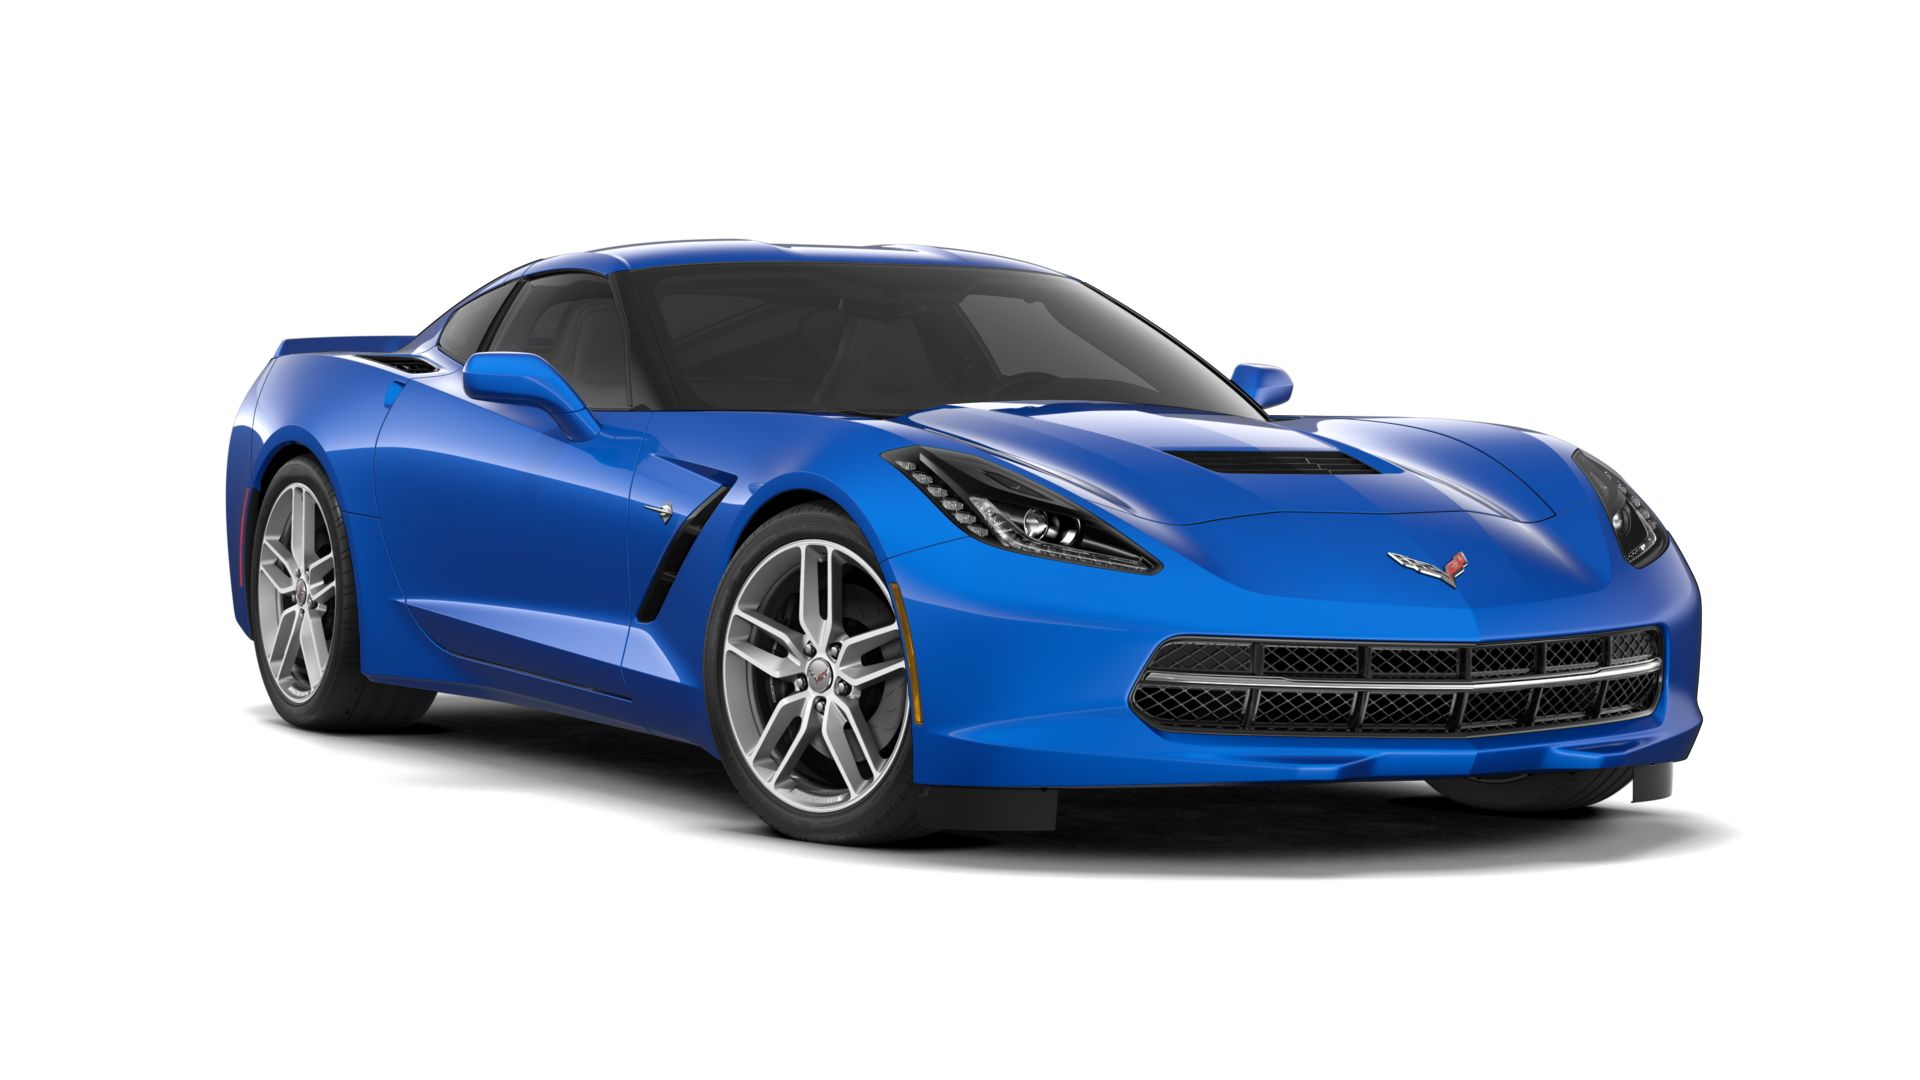 2019 Chevy Corvette 1LT WITH Z51 PERFORMANCE PACKAGE